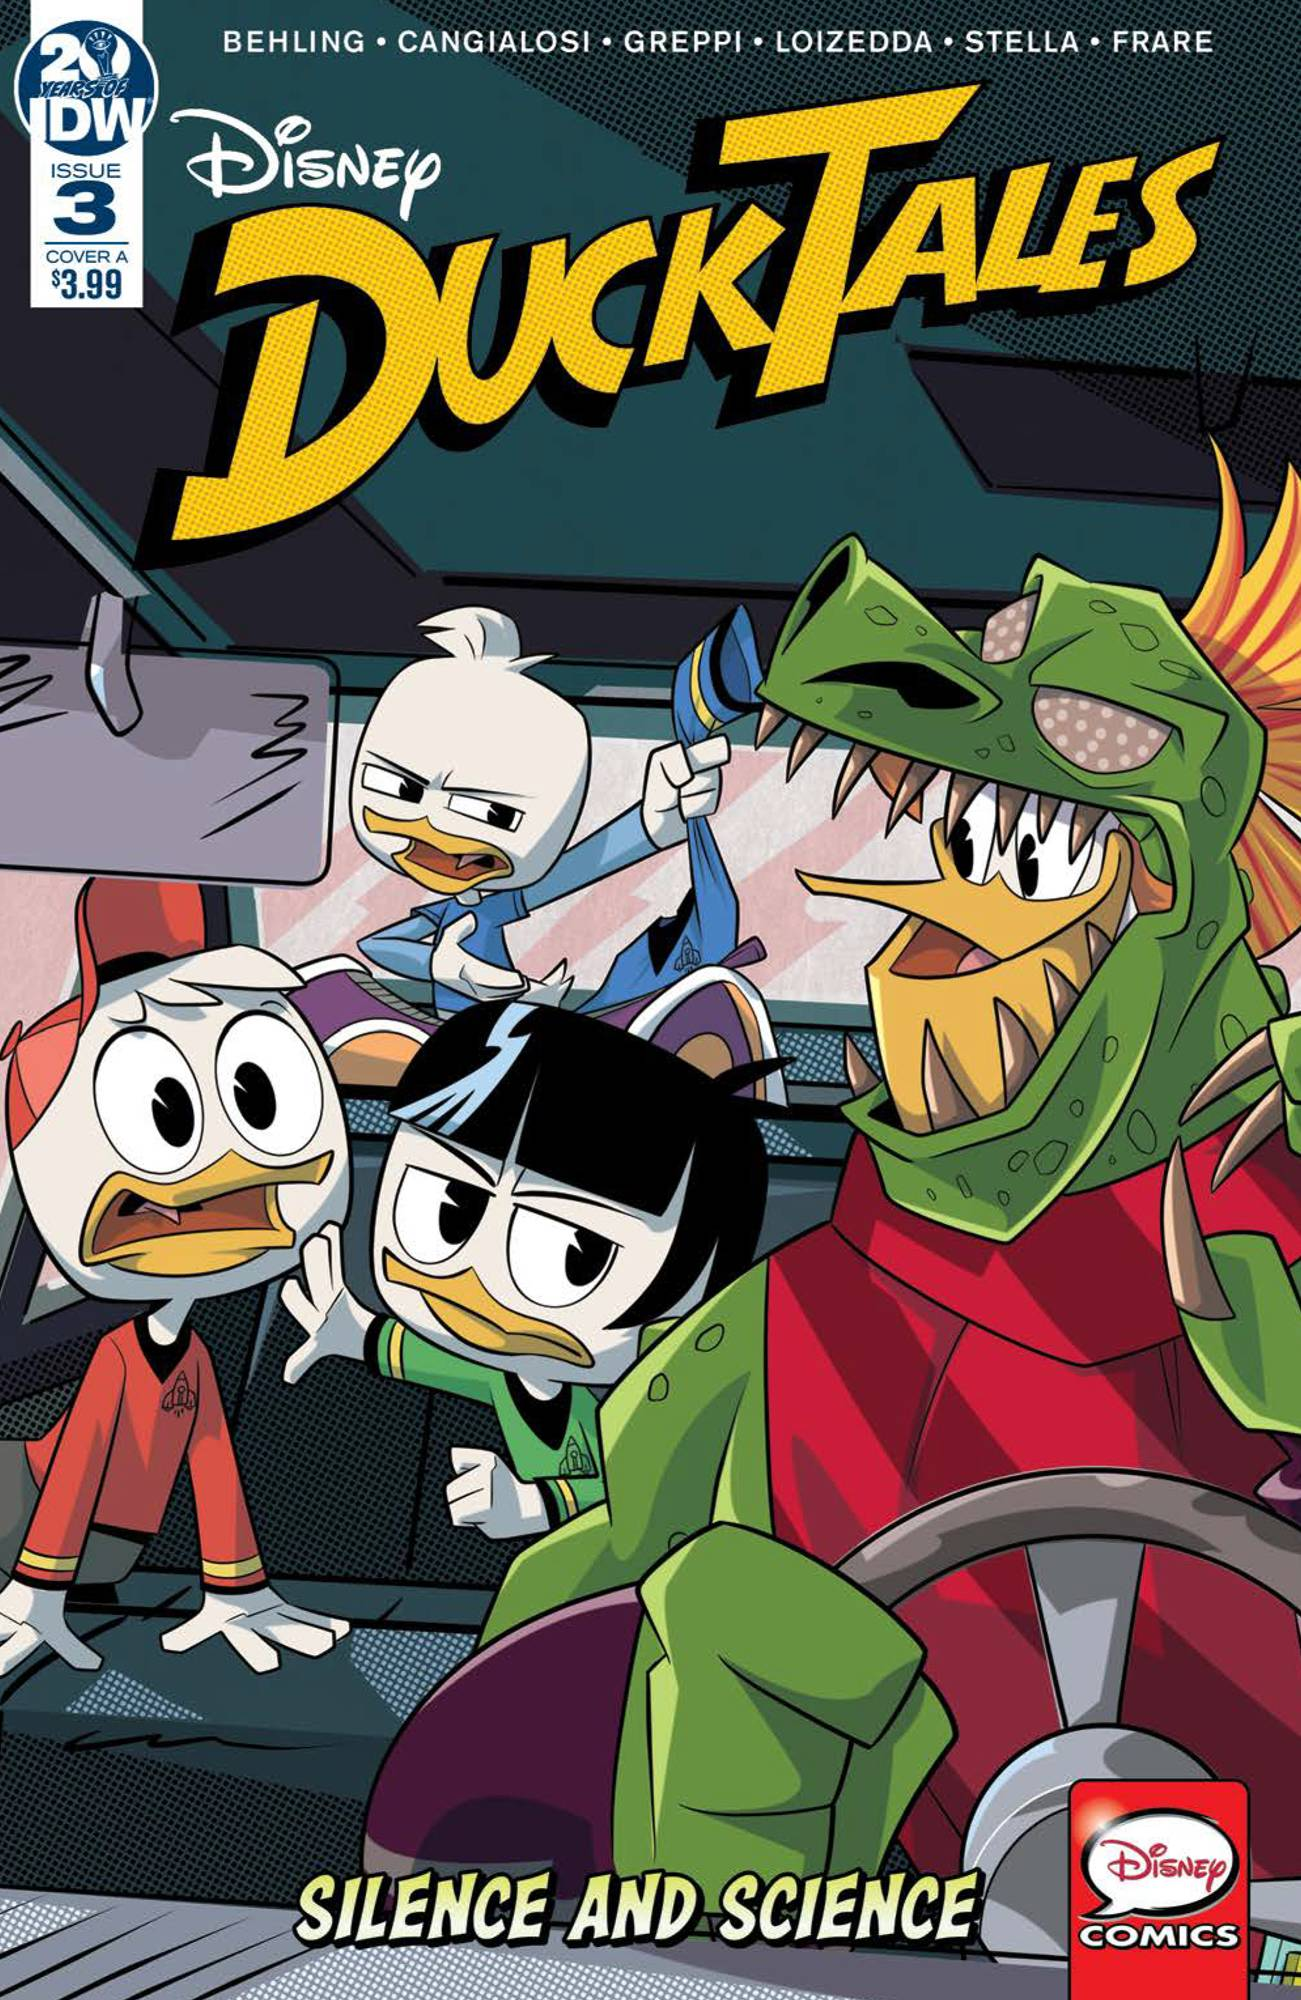 DUCKTALES SILENCE & SCIENCE #3 (OF 3) CVR A VARIOUS